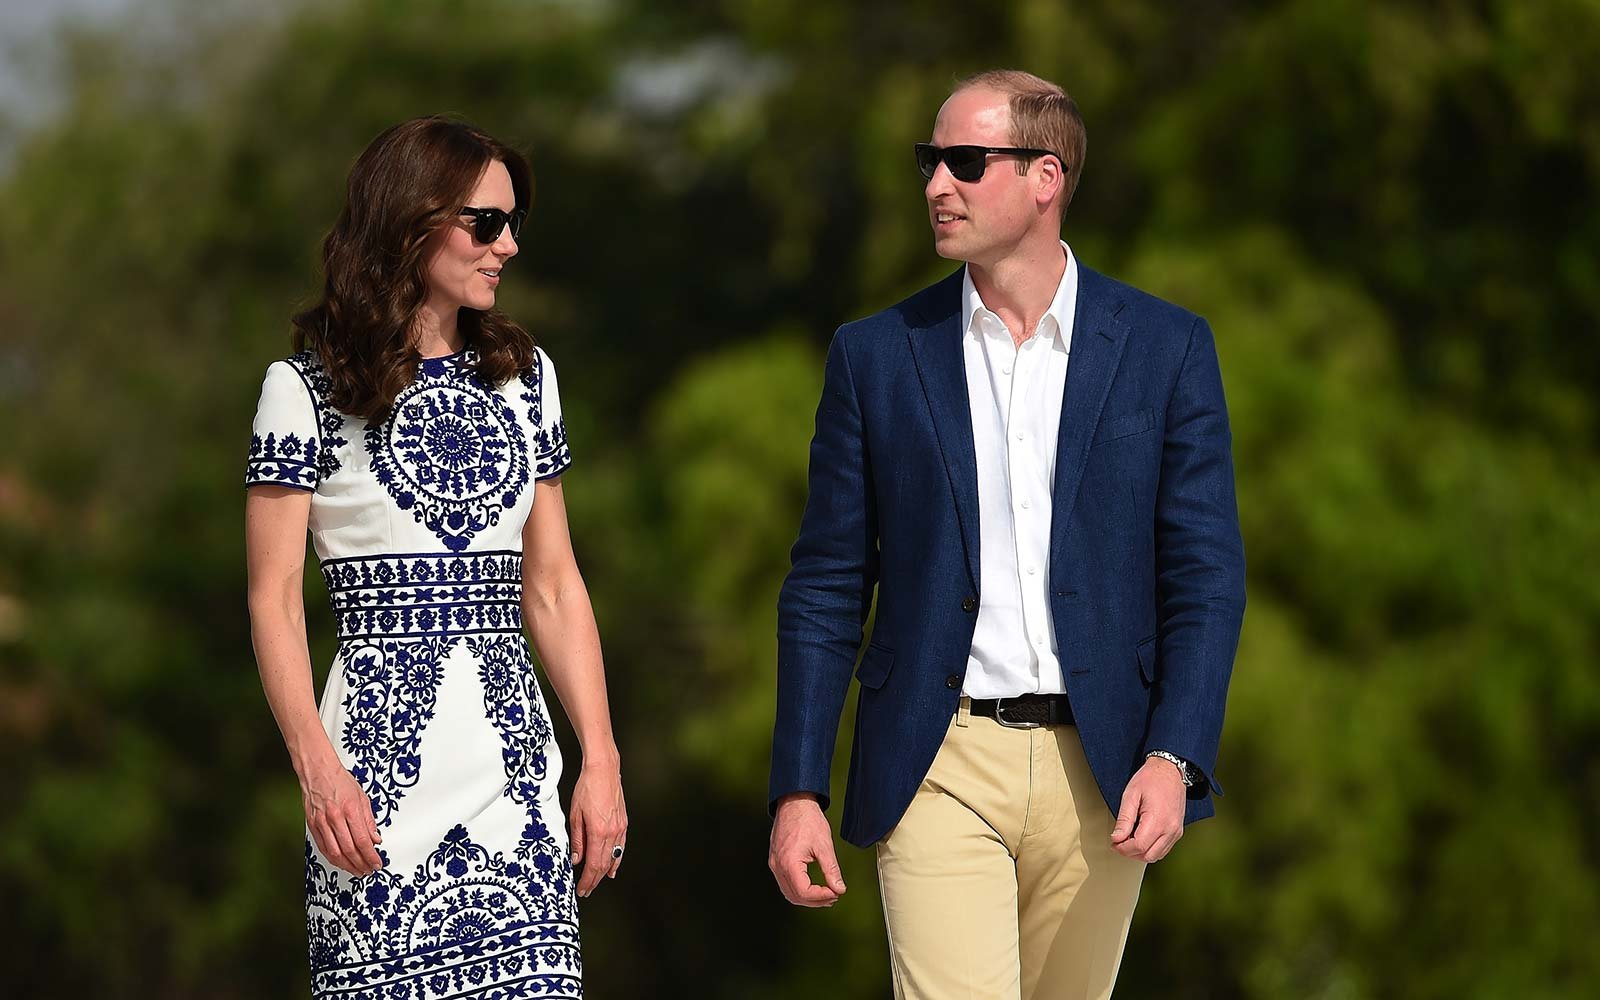 Pregnant Kate Middleton Dances With Paddington Bear Alongside Prince William, Prince Harry